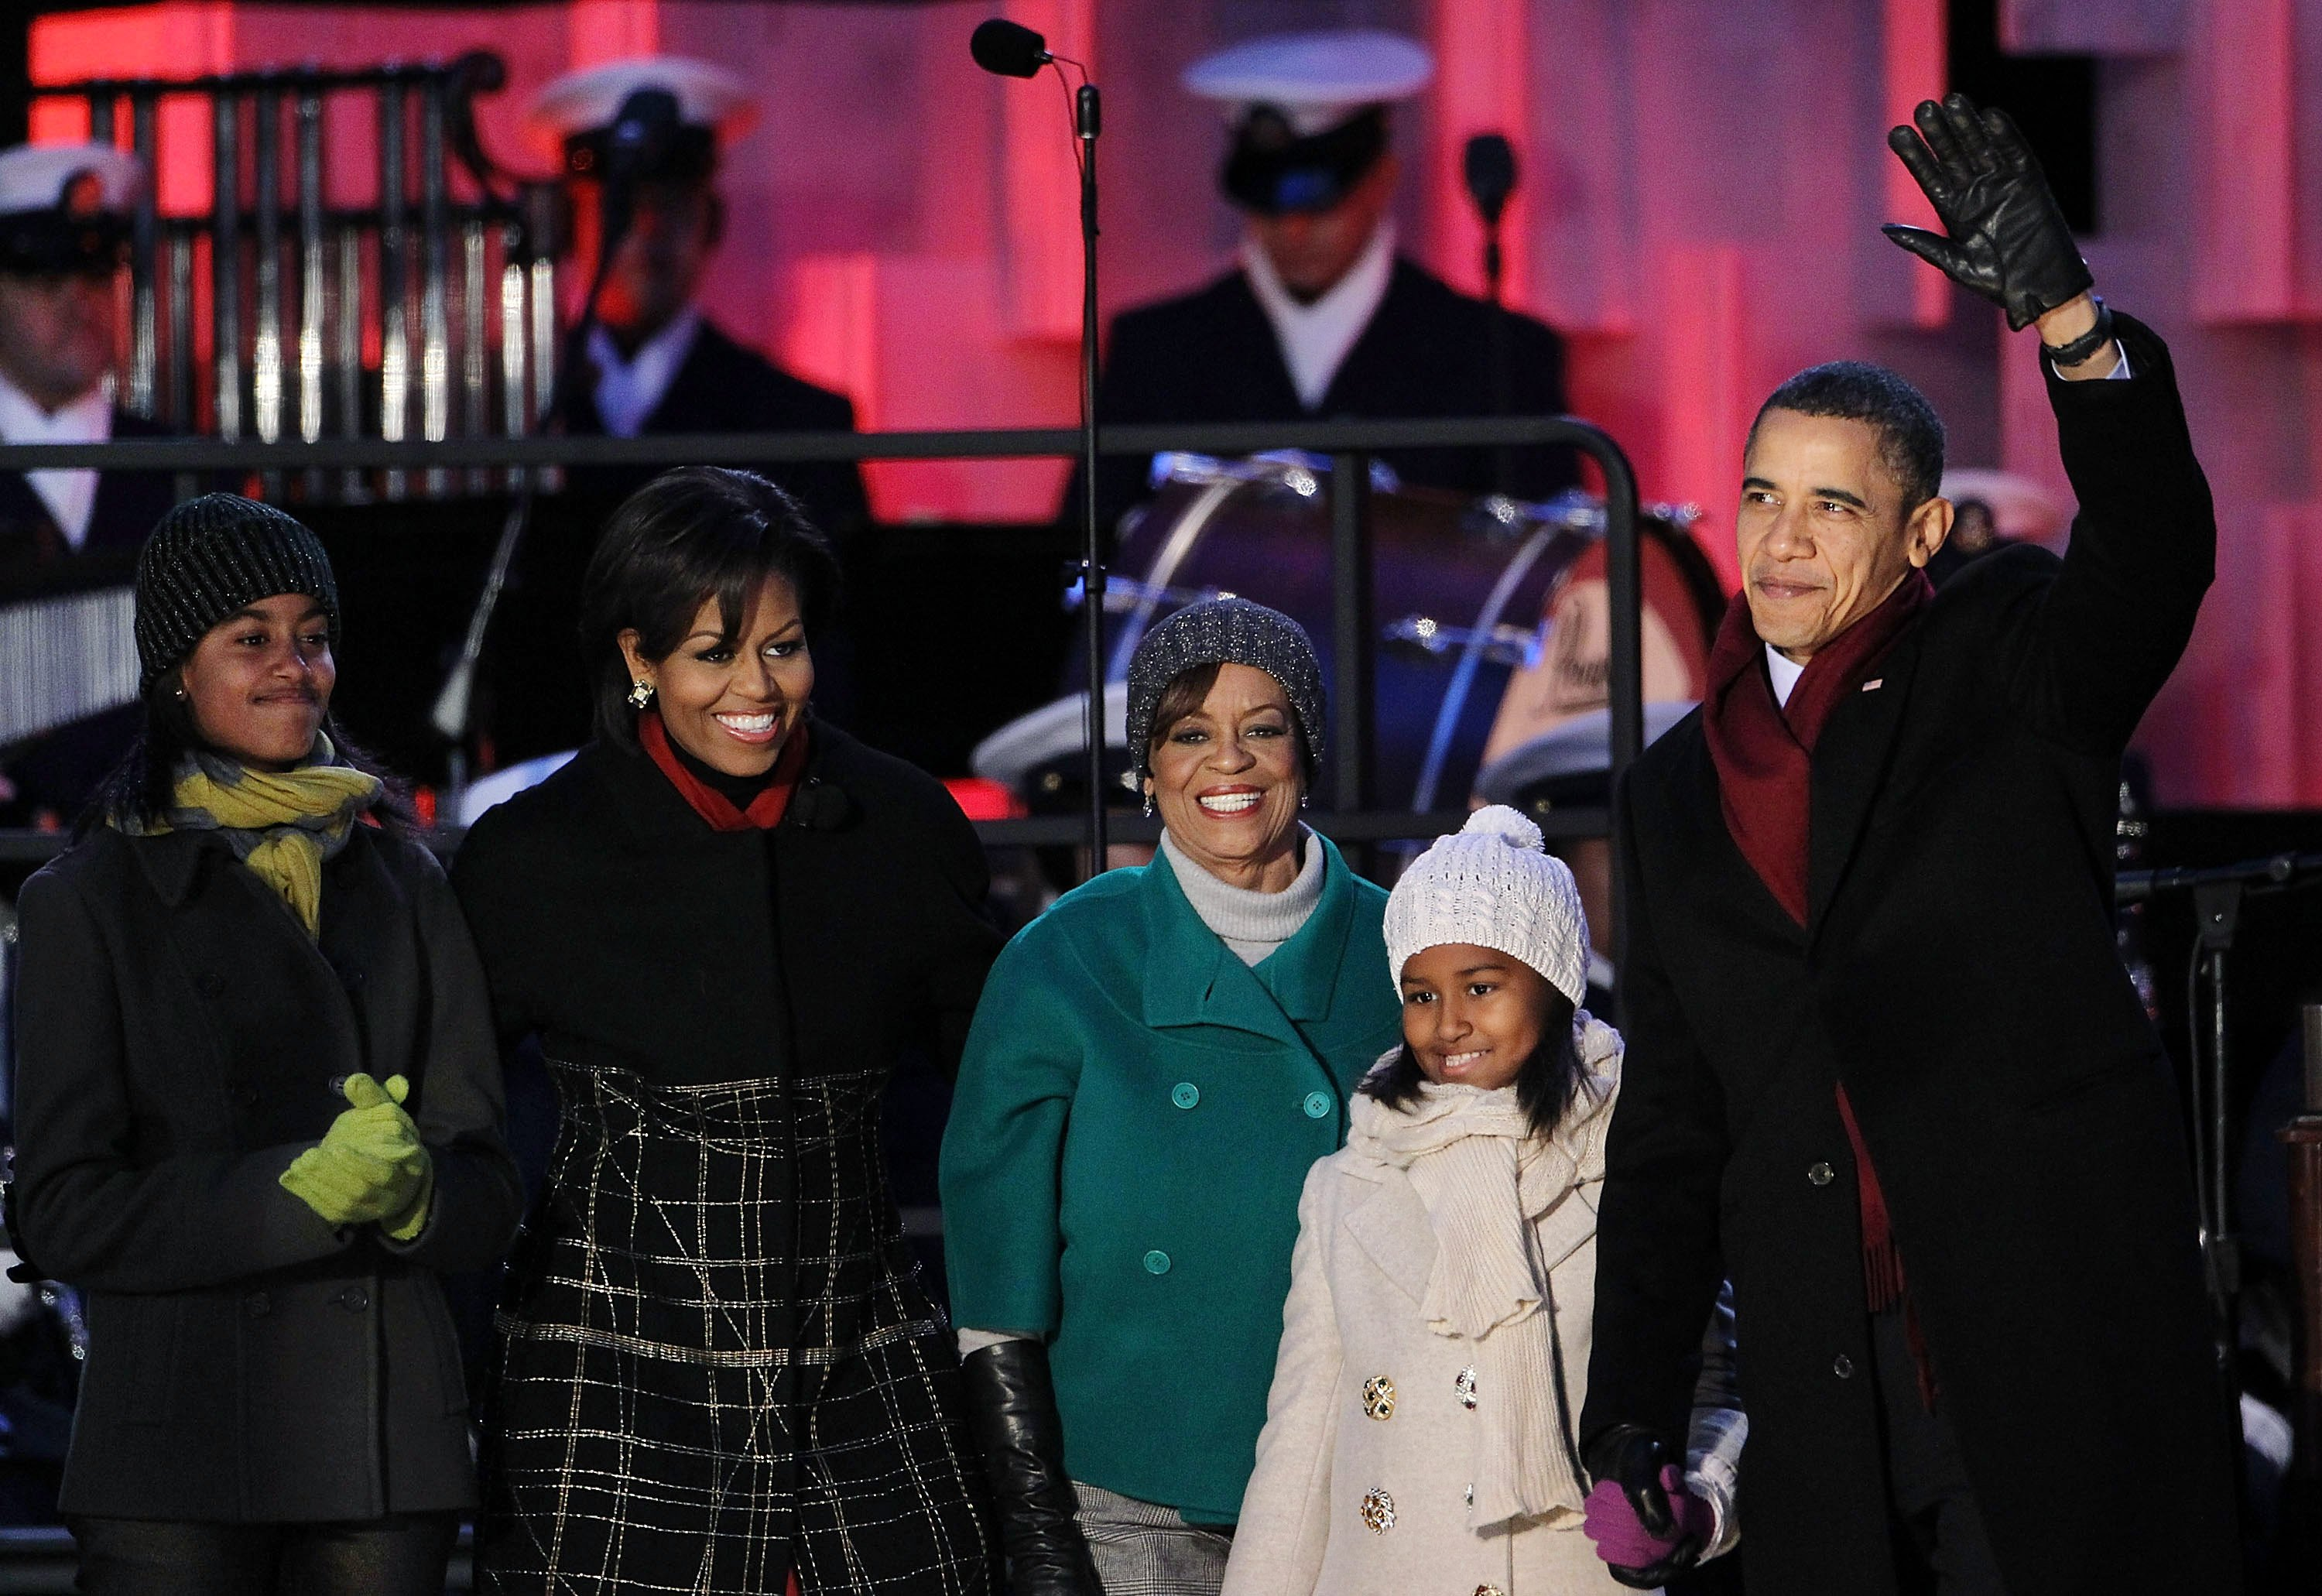 Barack Obama, his daughters Sasha and Malia, mother-in-law Marian Robinson, and Michelle Obama at the National Christmas Tree lighting ceremony on December 9, 2010 | Photo: Getty Images